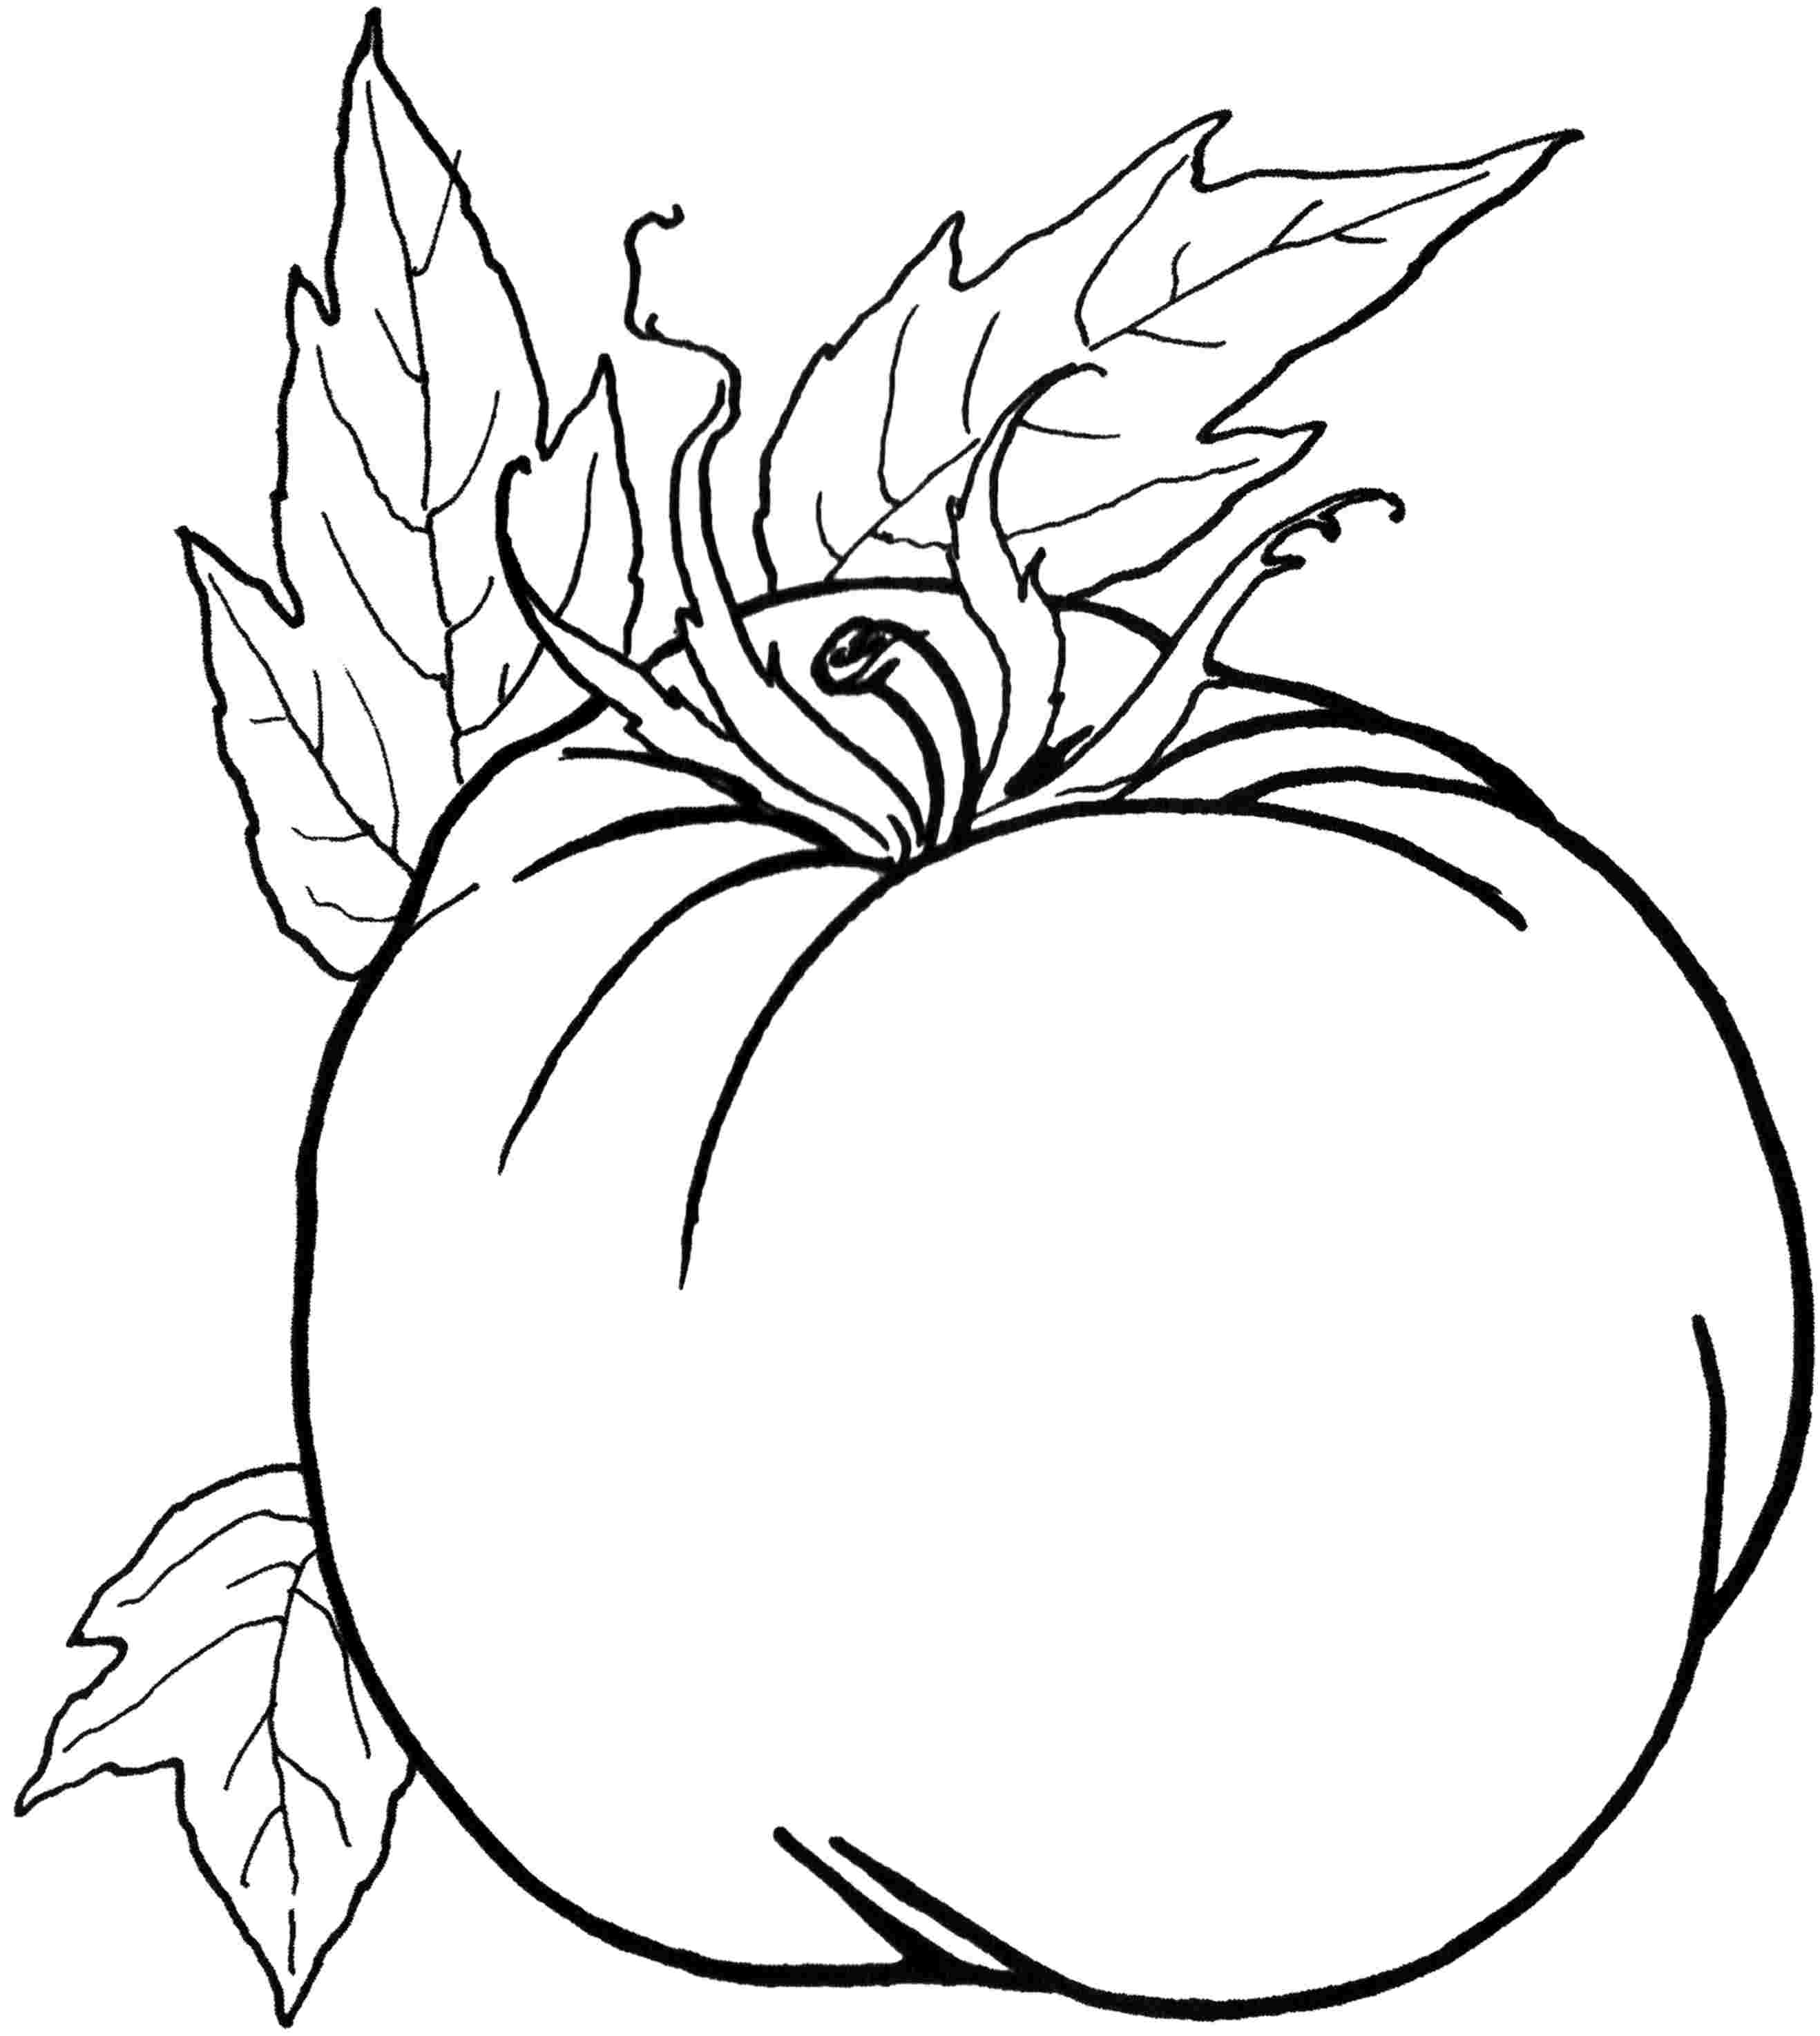 vegetables images for colouring vegetable coloring pages for childrens printable for free for vegetables images colouring